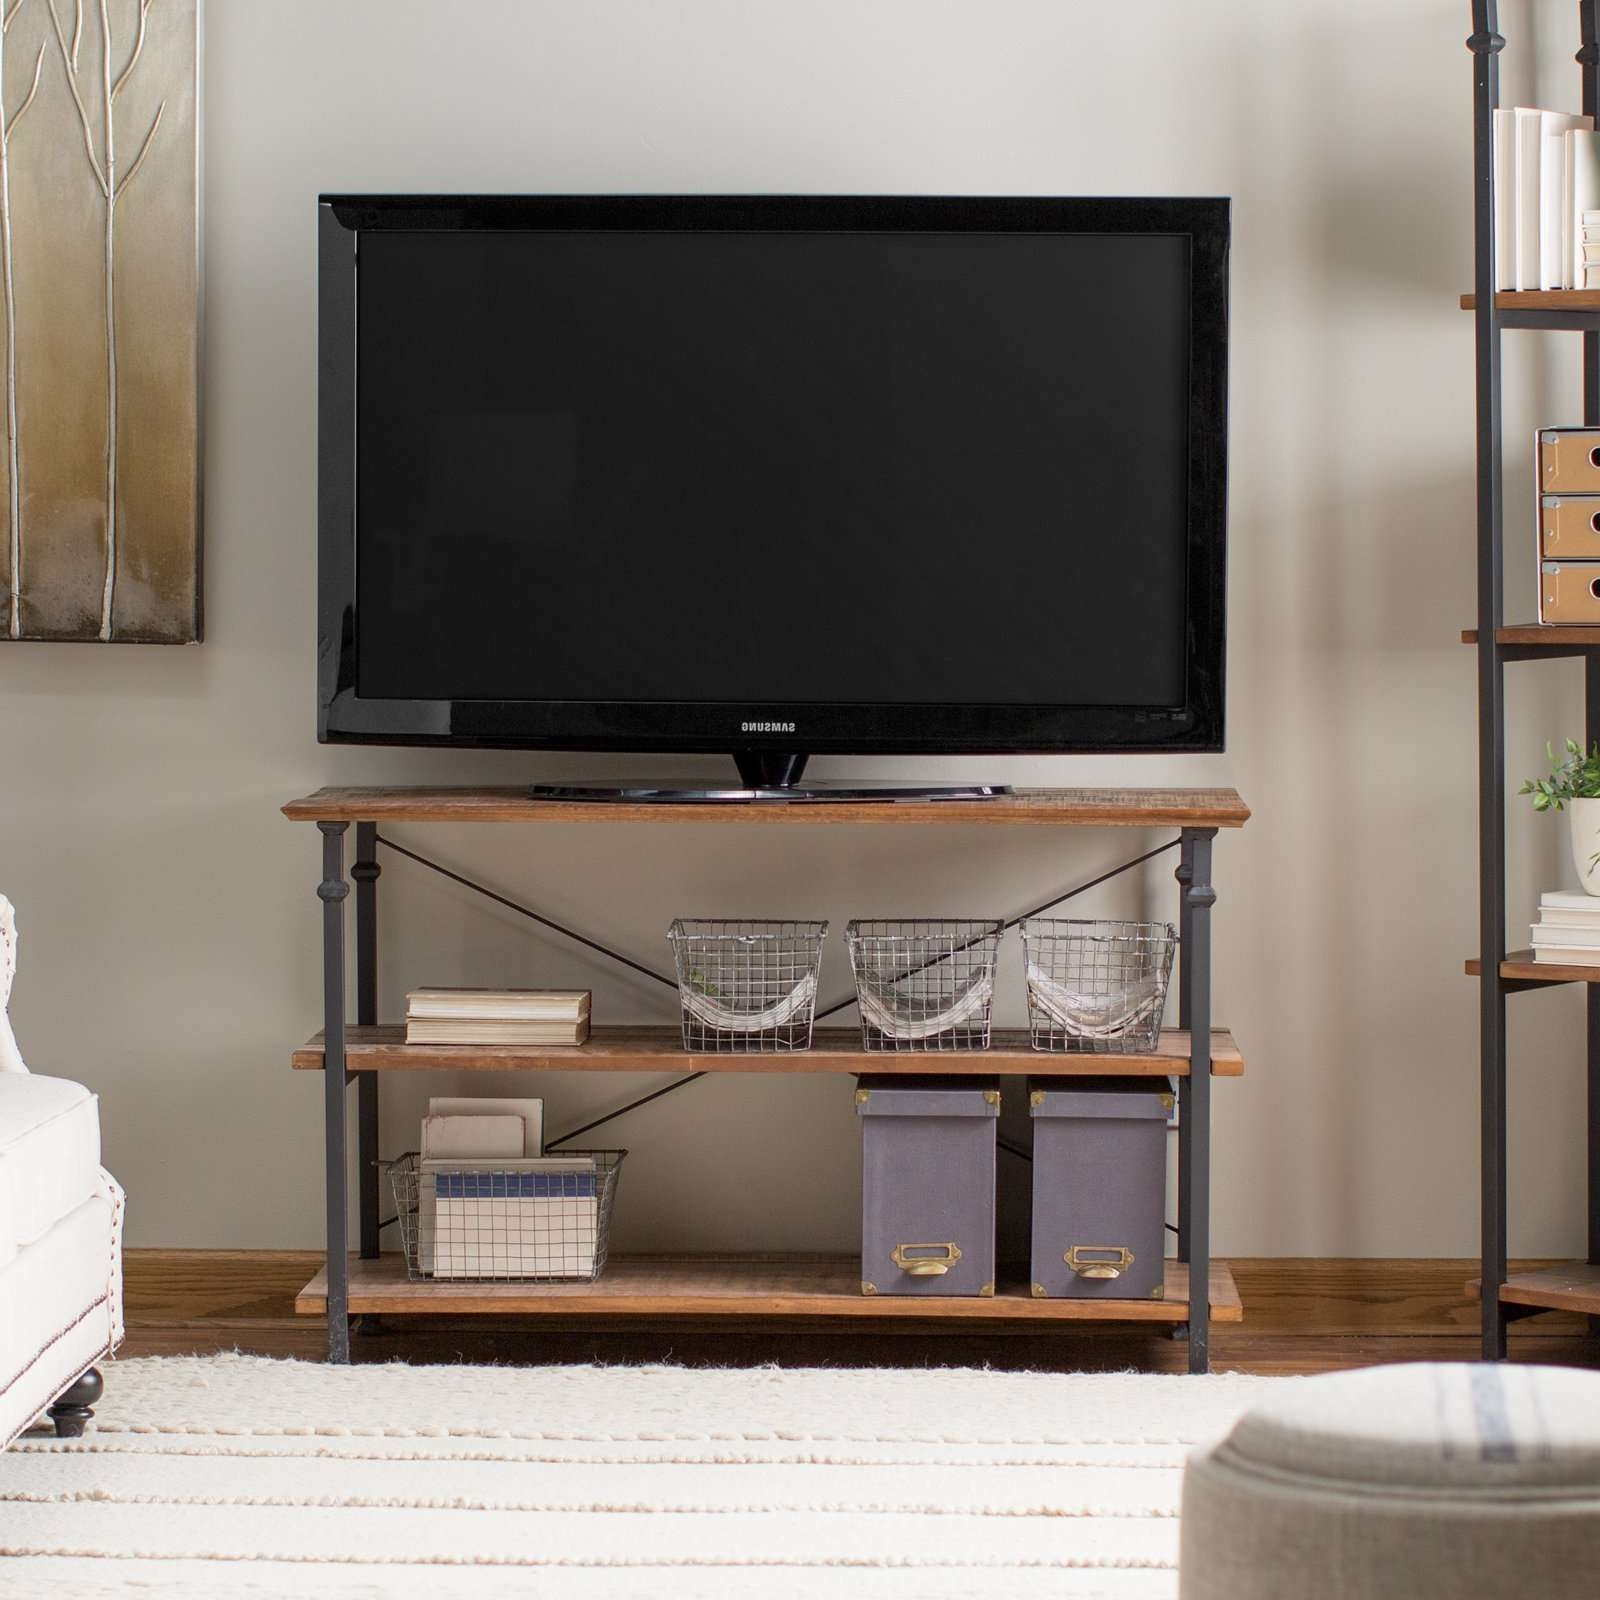 Weston Home Factory Tv Stand – Walmart Within Open Shelf Tv Stands (View 8 of 15)